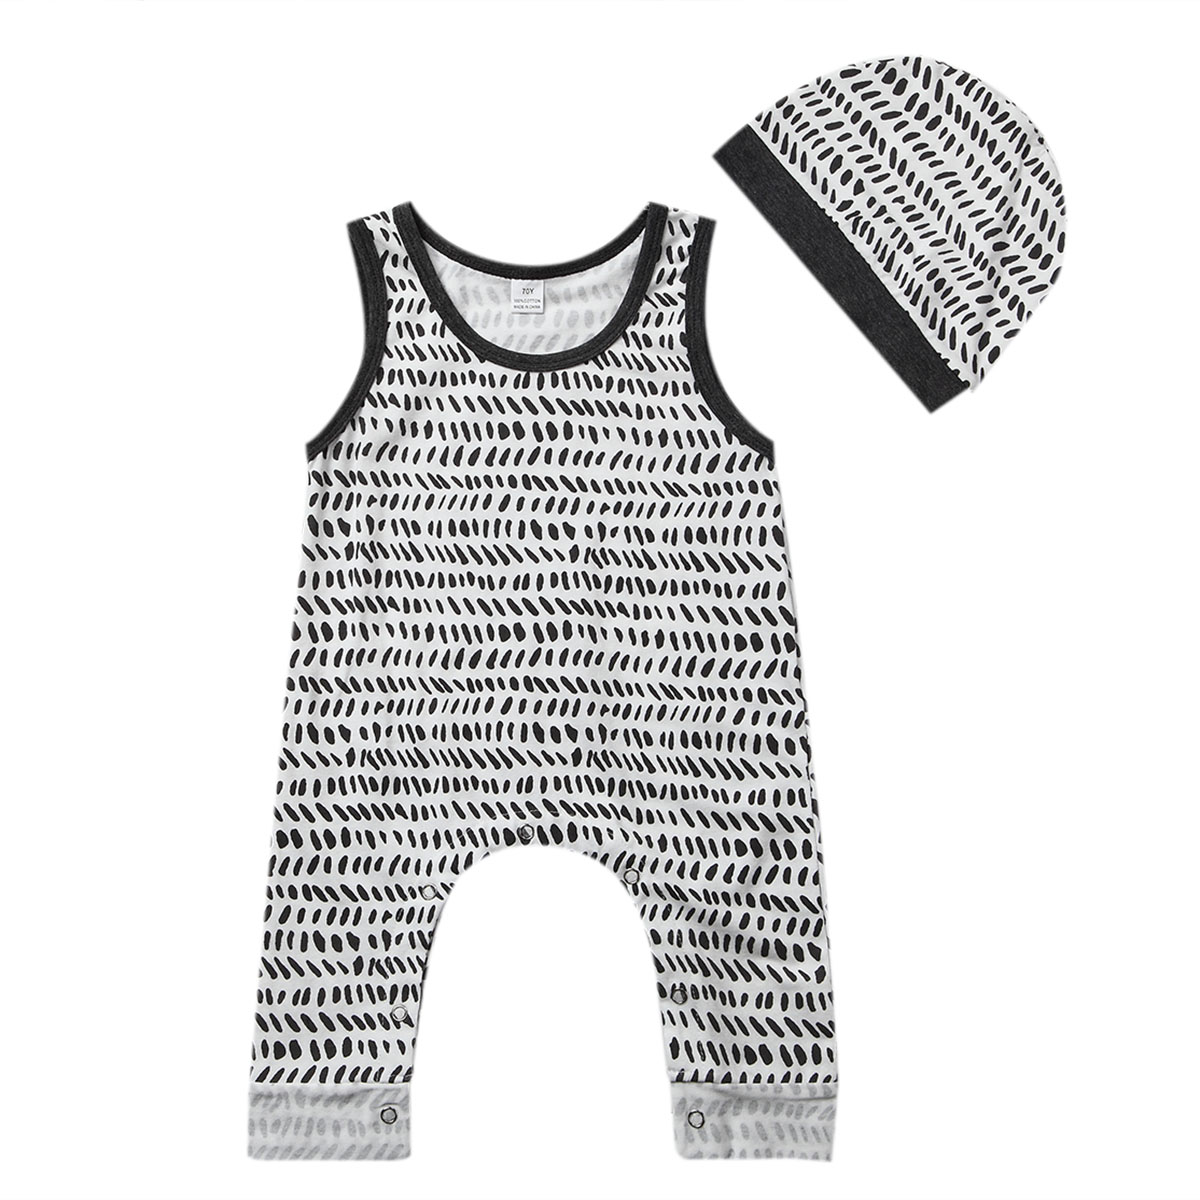 Newborn Baby Cotton Romper Infant Boy Girl Clothing Jumpsuit Sleeveless Cute Summer Cotton Kids Clothes Outfit 2017 denim romper newborn baby boy girl summer sleeveless pocket clothes toddler kids jumpsuit sunsuit children clothing outfits